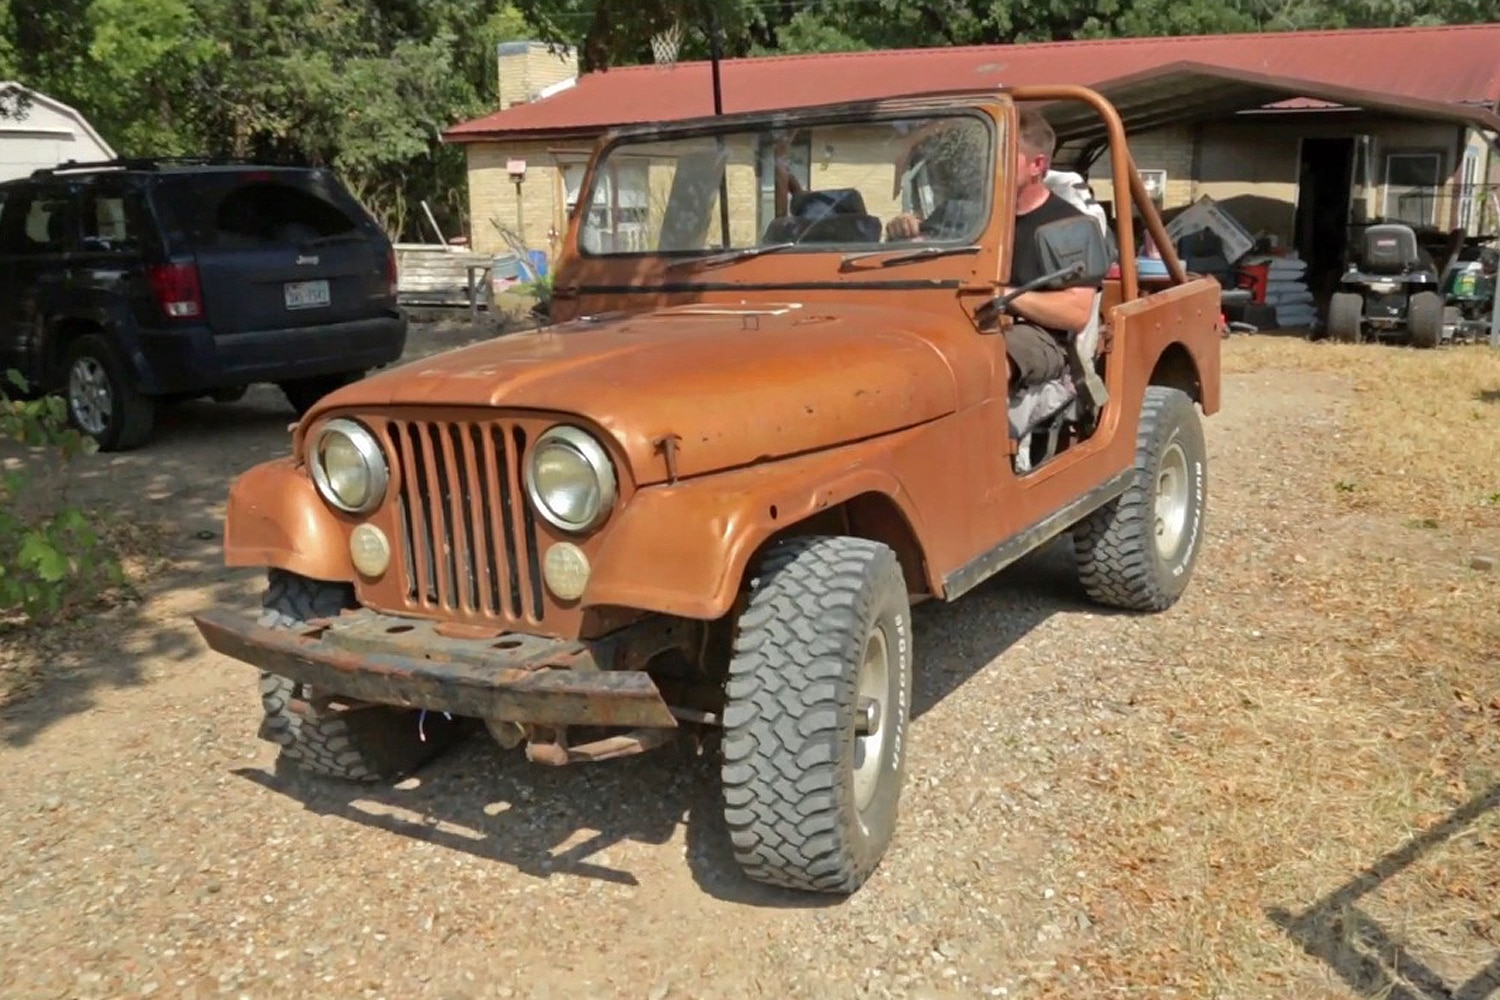 hight resolution of jeep cj7 getting rewired right off the bat the old cj7 needed a little hot wiring to get the